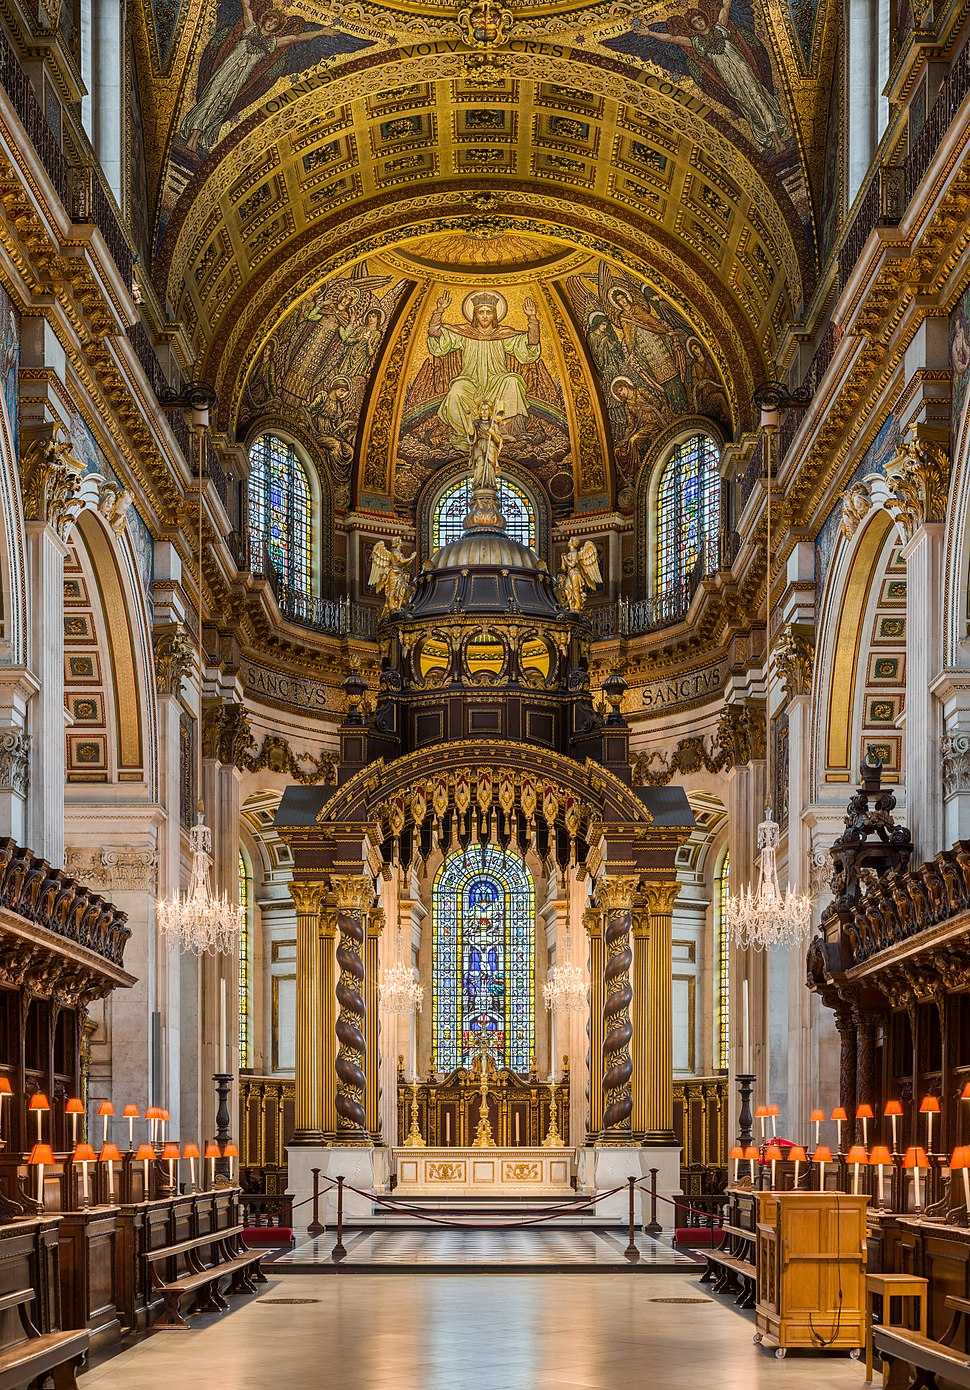 St Paul's Cathedral High Altar, London, UK - Diliff